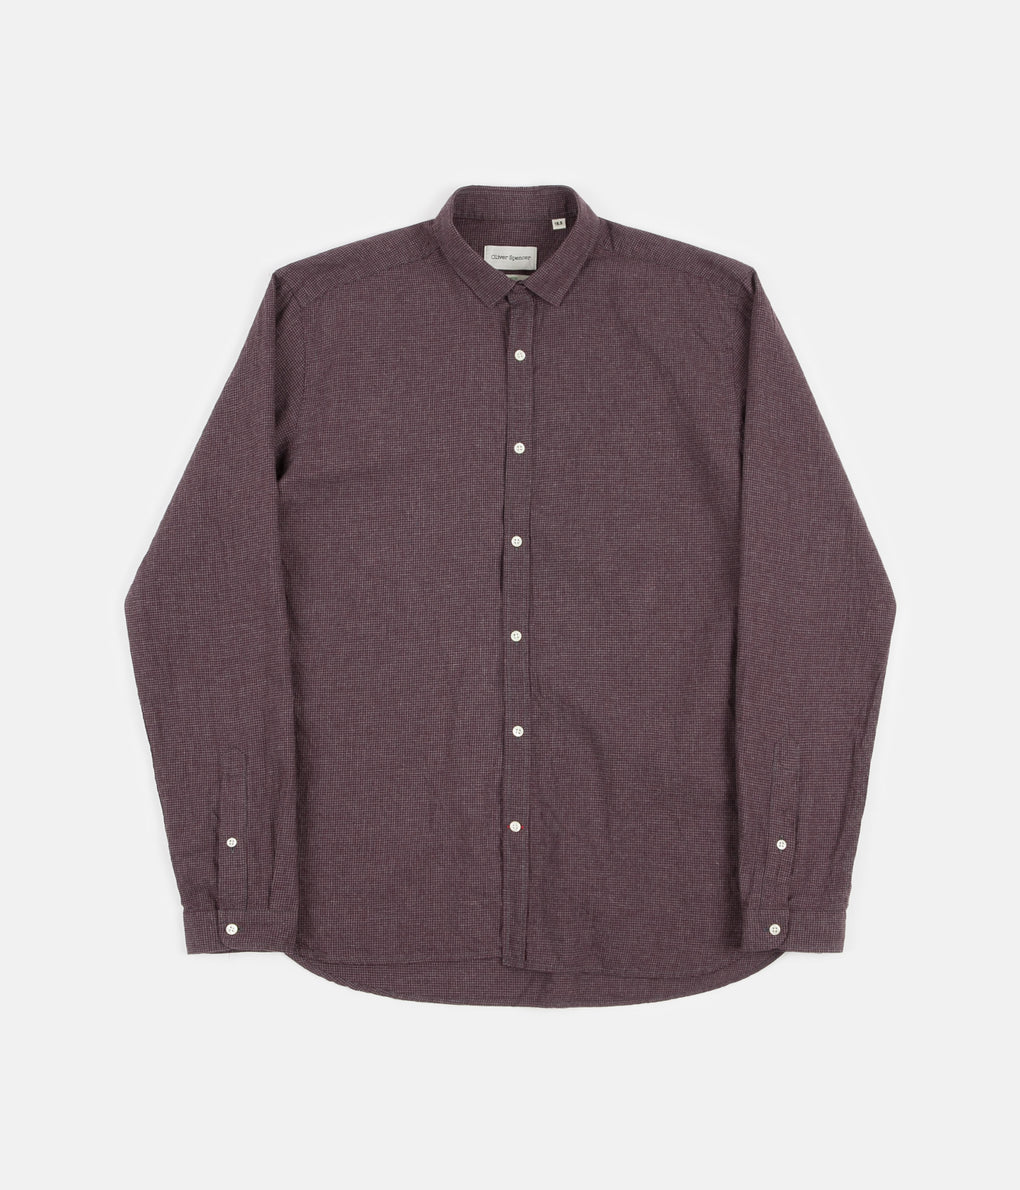 Oliver Spencer Clerkenwell Tab Shirt - Pippen Red